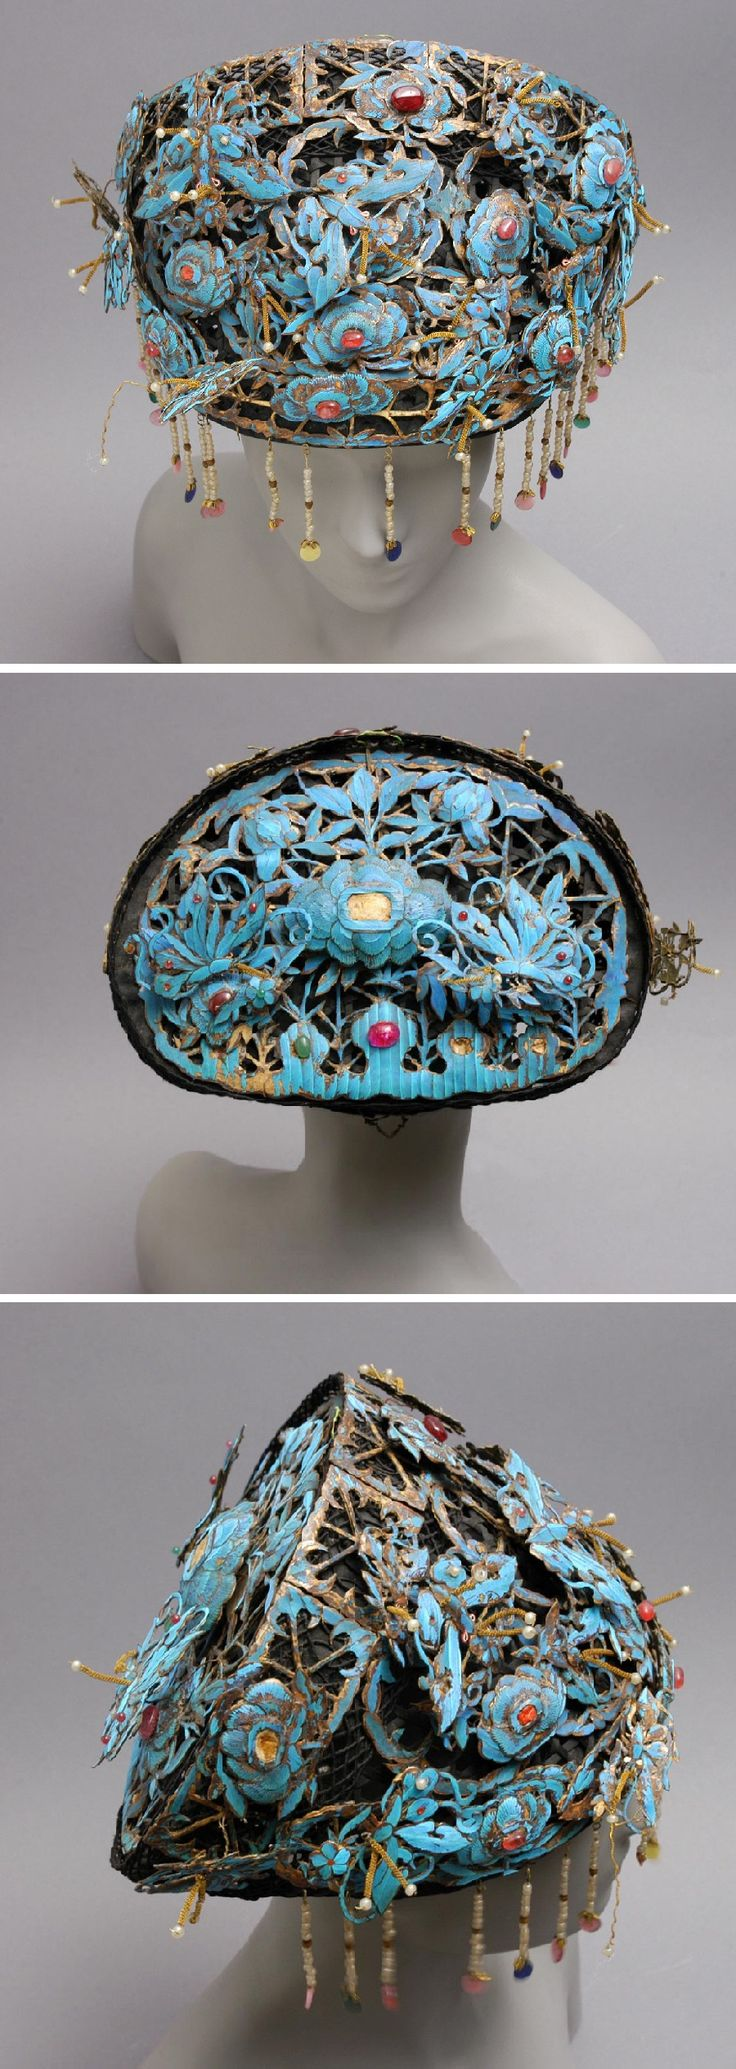 Ceremonial Hat (Kuan), Late 19th century, Chinese, Metal flowers, kingfisher feathers, multicolored beads and stones